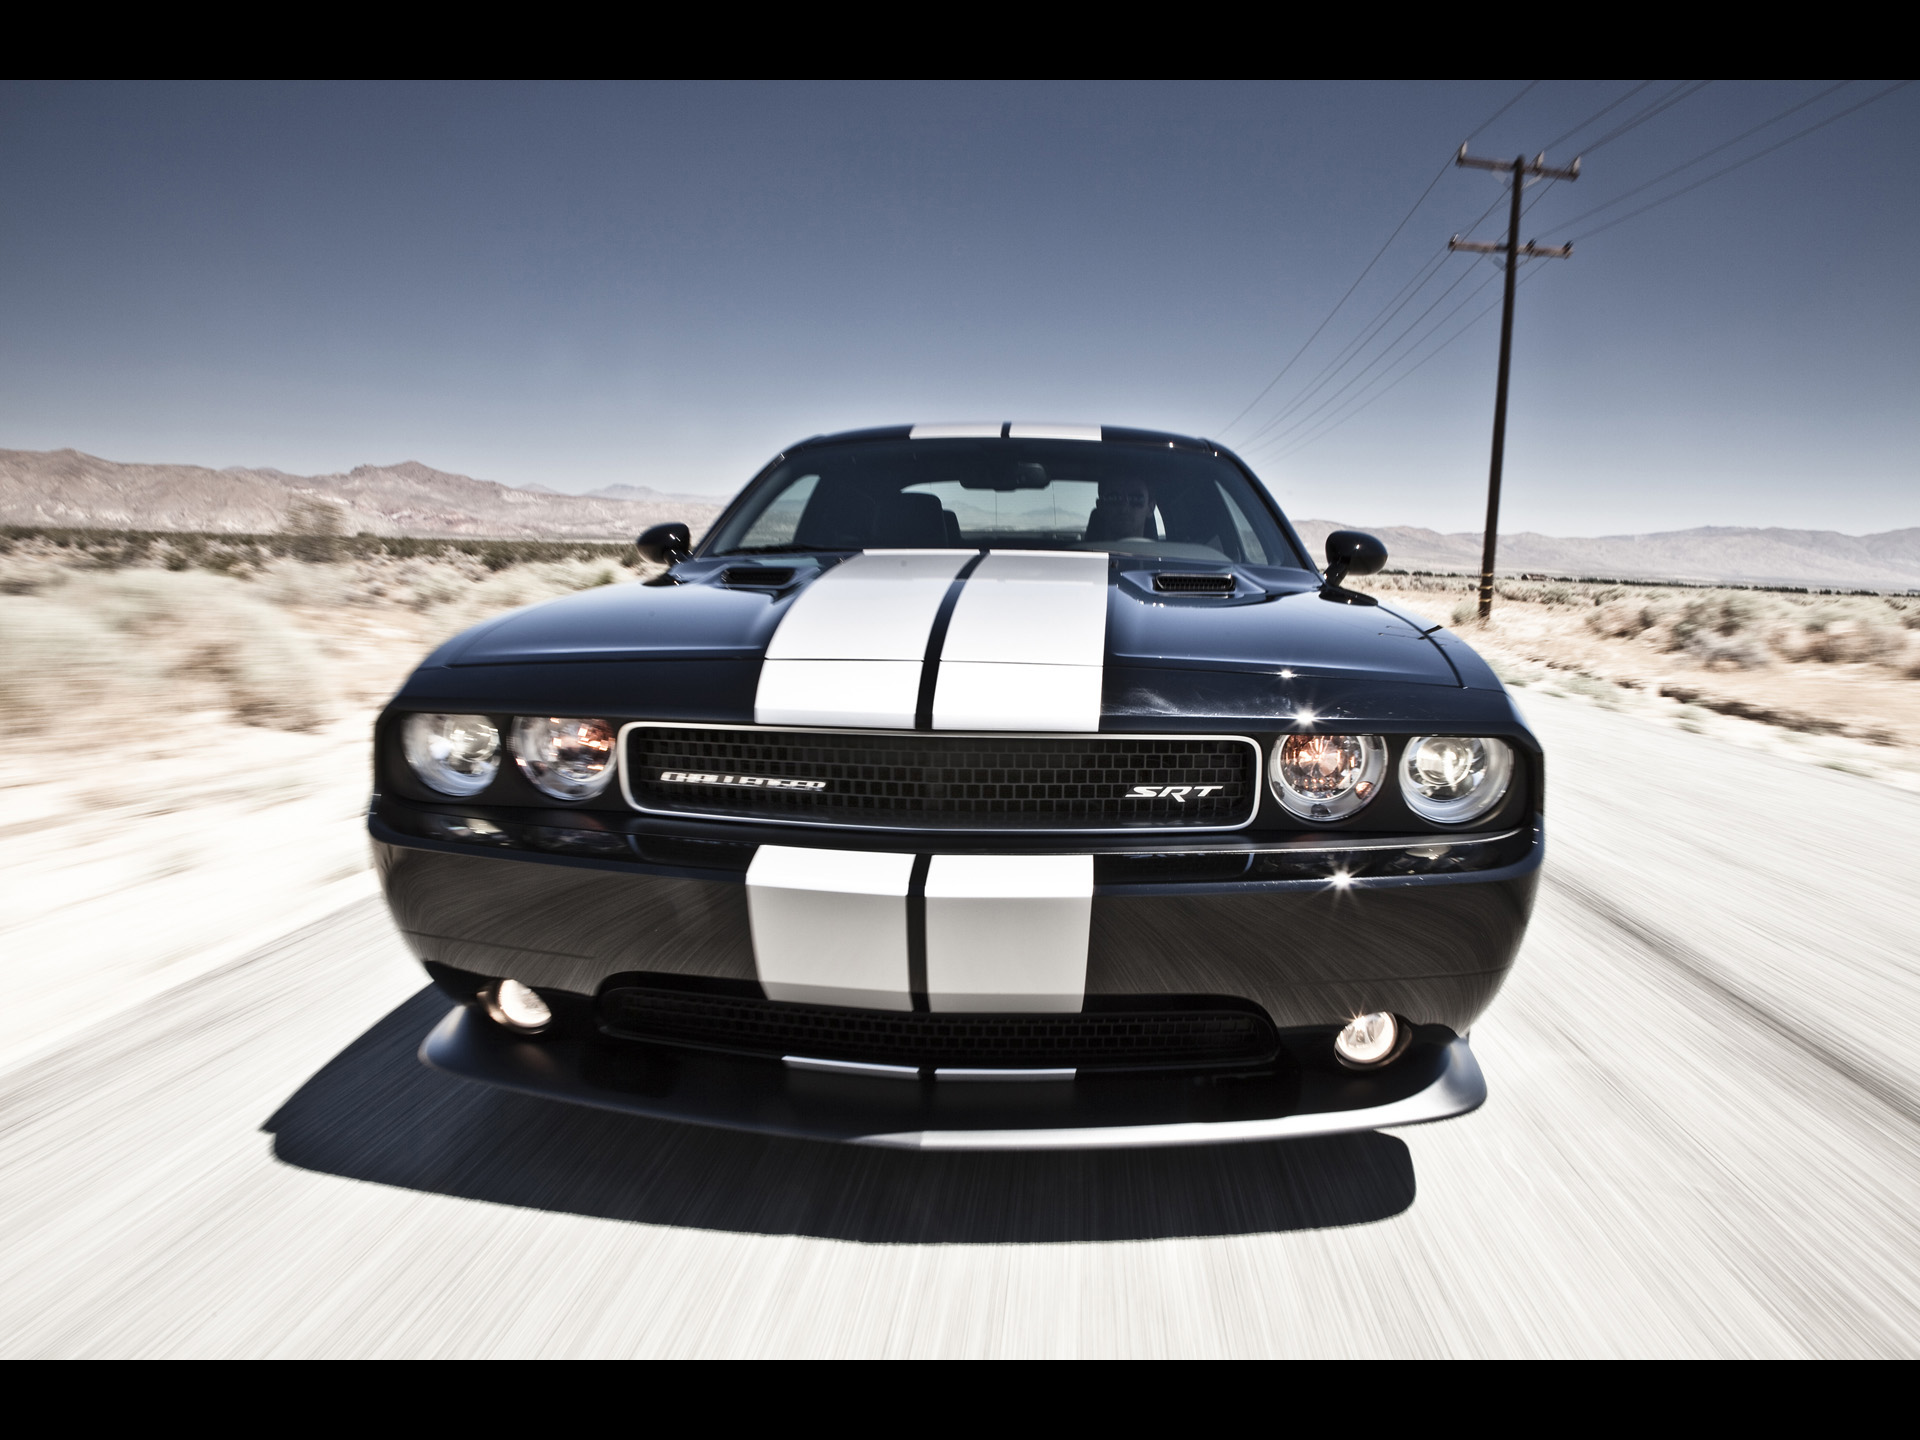 2012 Dodge Challenger SRT8 392   Front Speed   1920x1440   Wallpaper 1920x1440